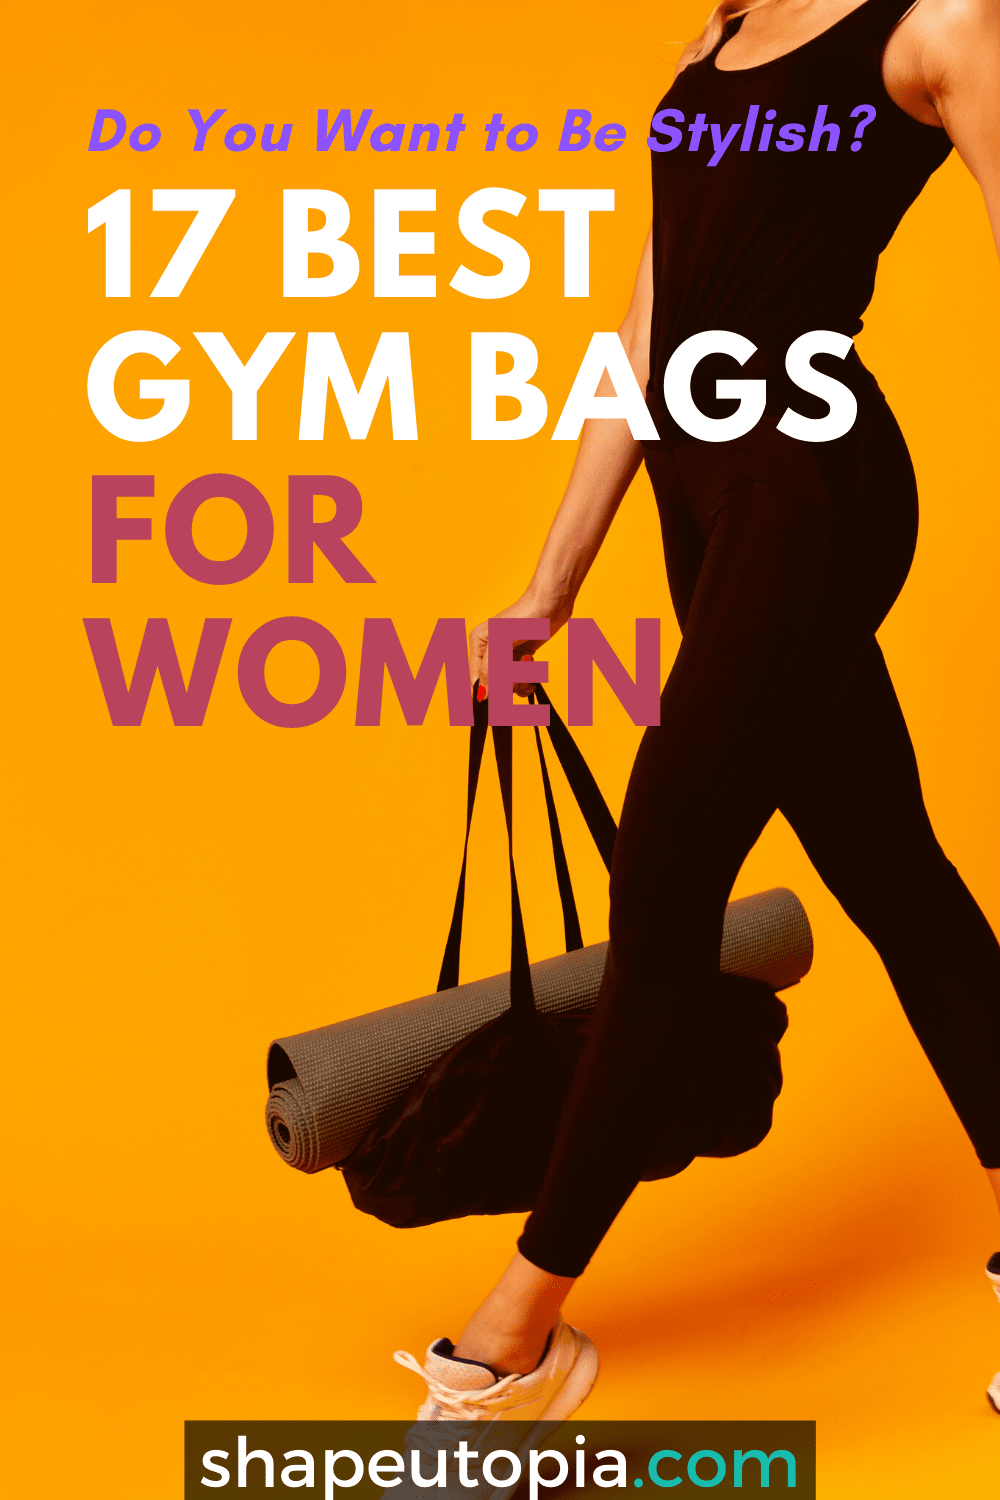 17 Best Gym Bags for Women Who Want to Be Stylish